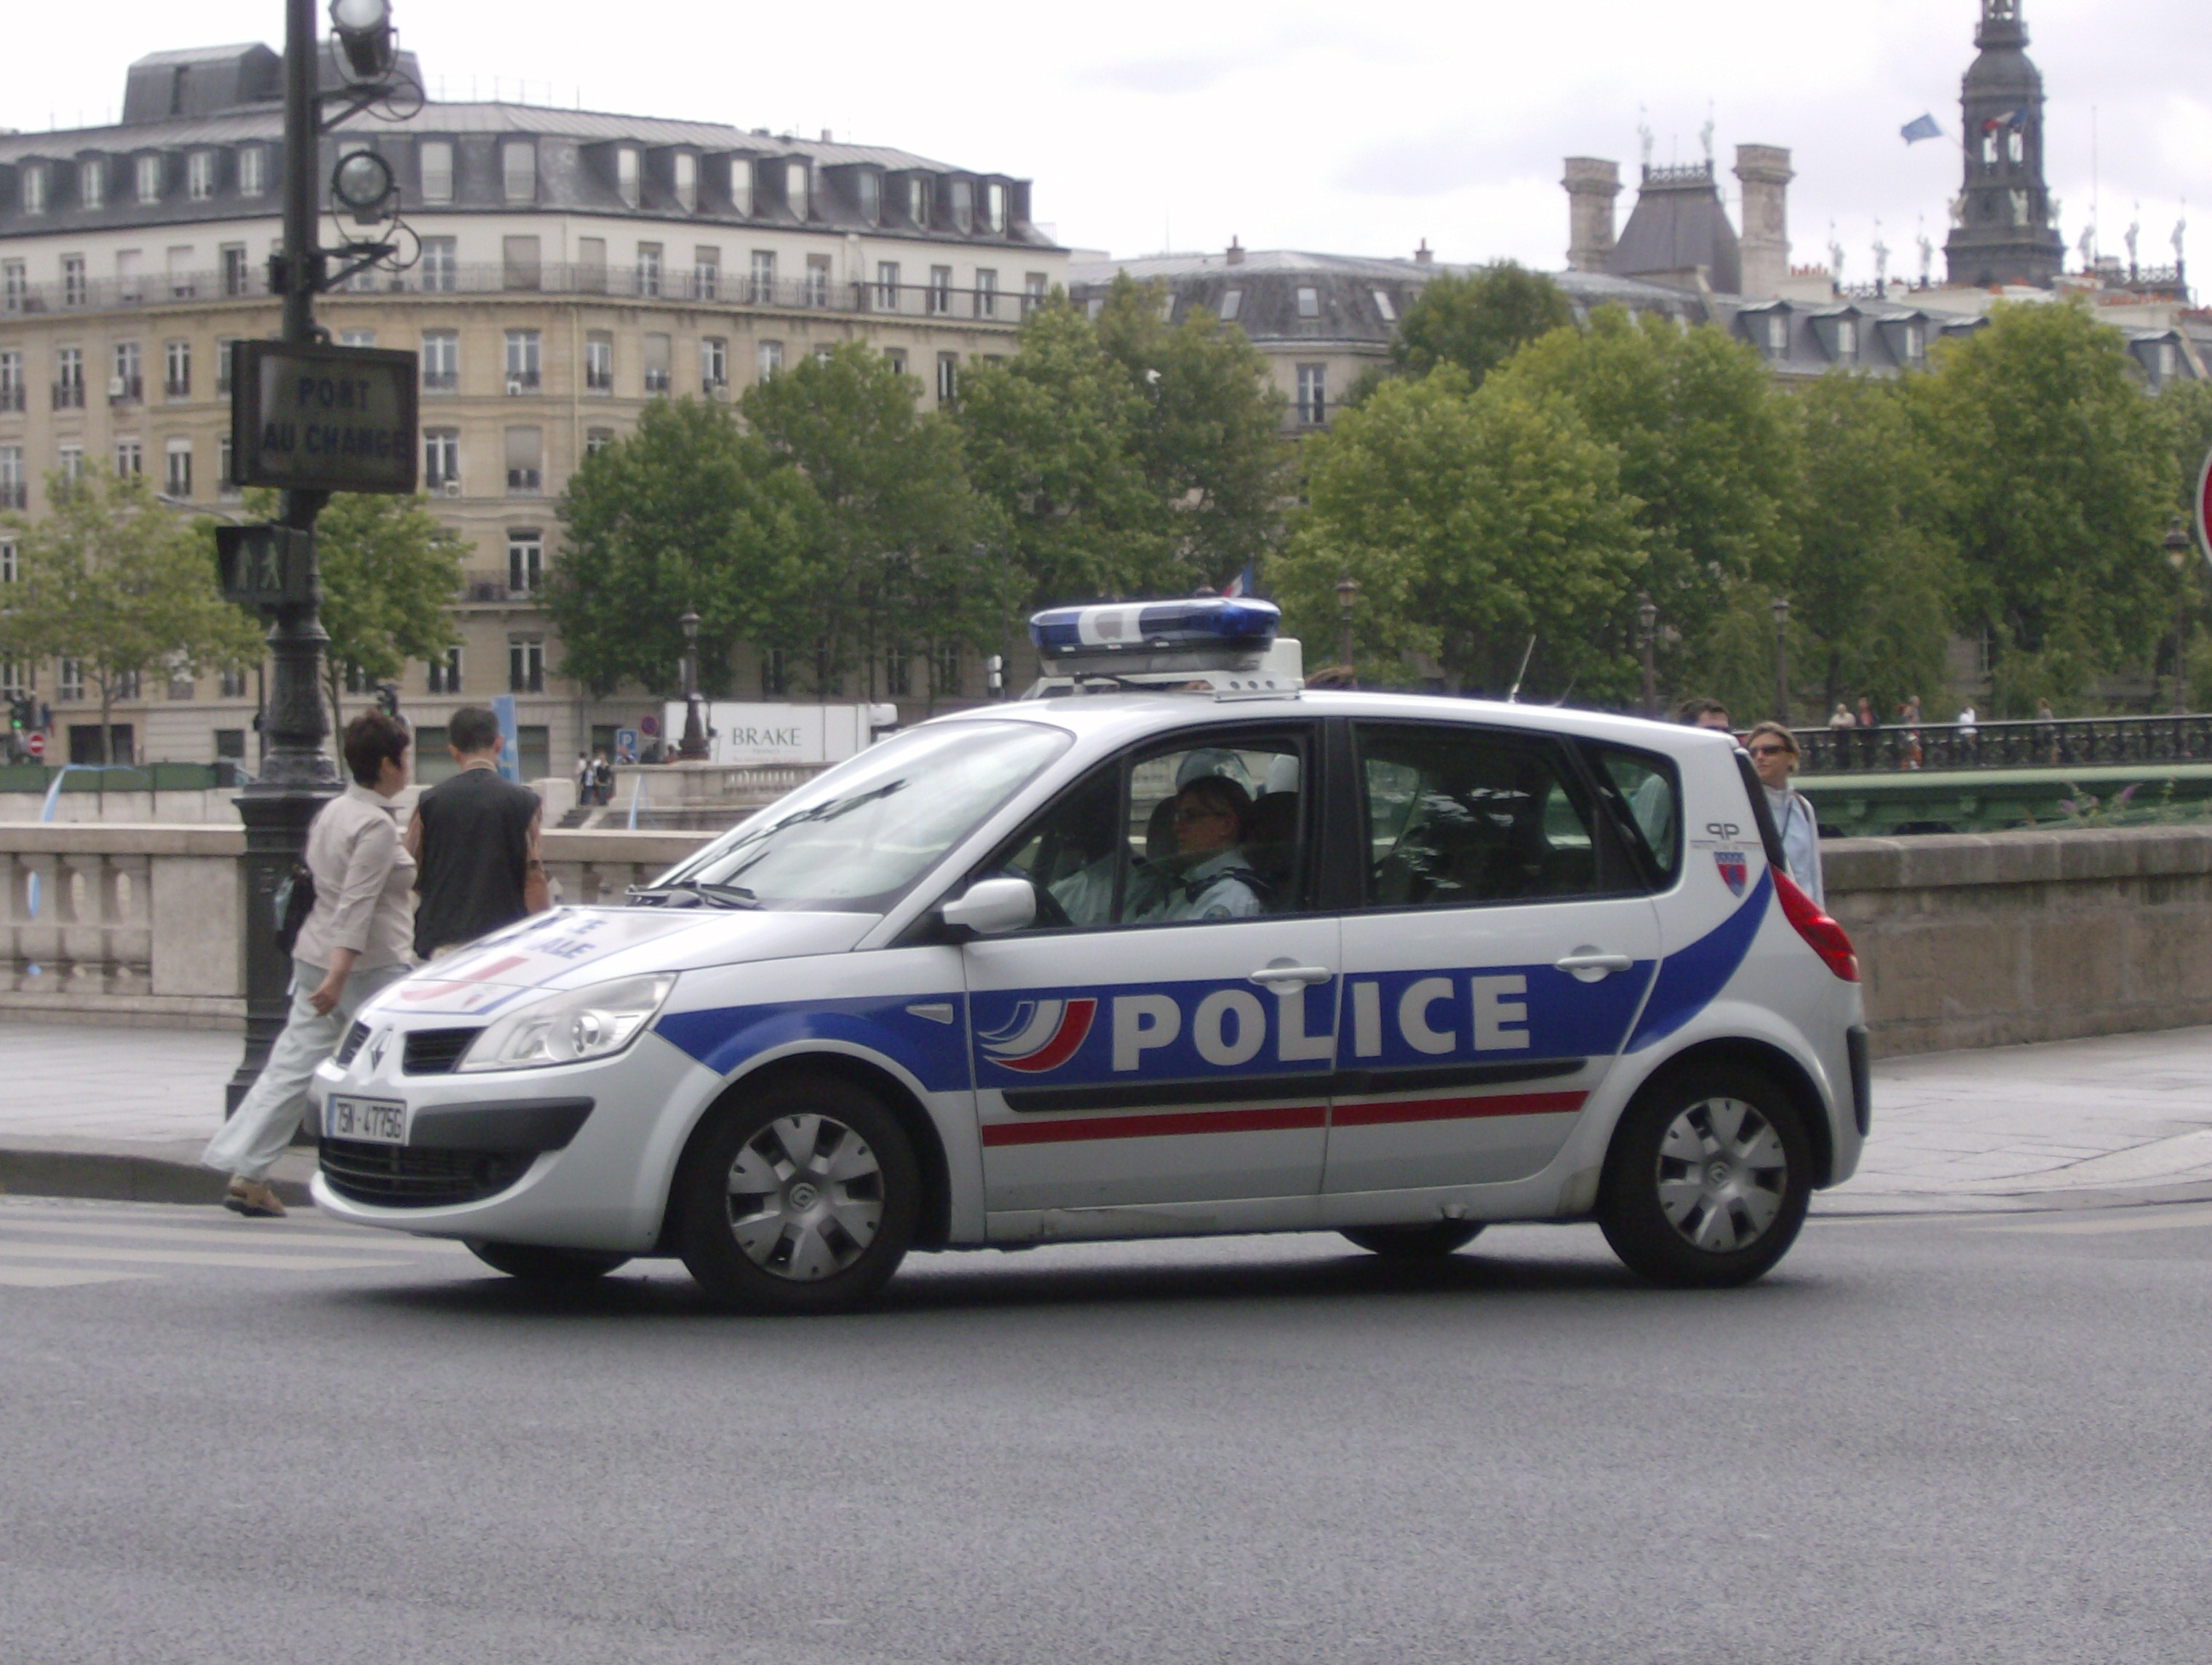 Renault Police Scenic | Flickr - Photo Sharing!